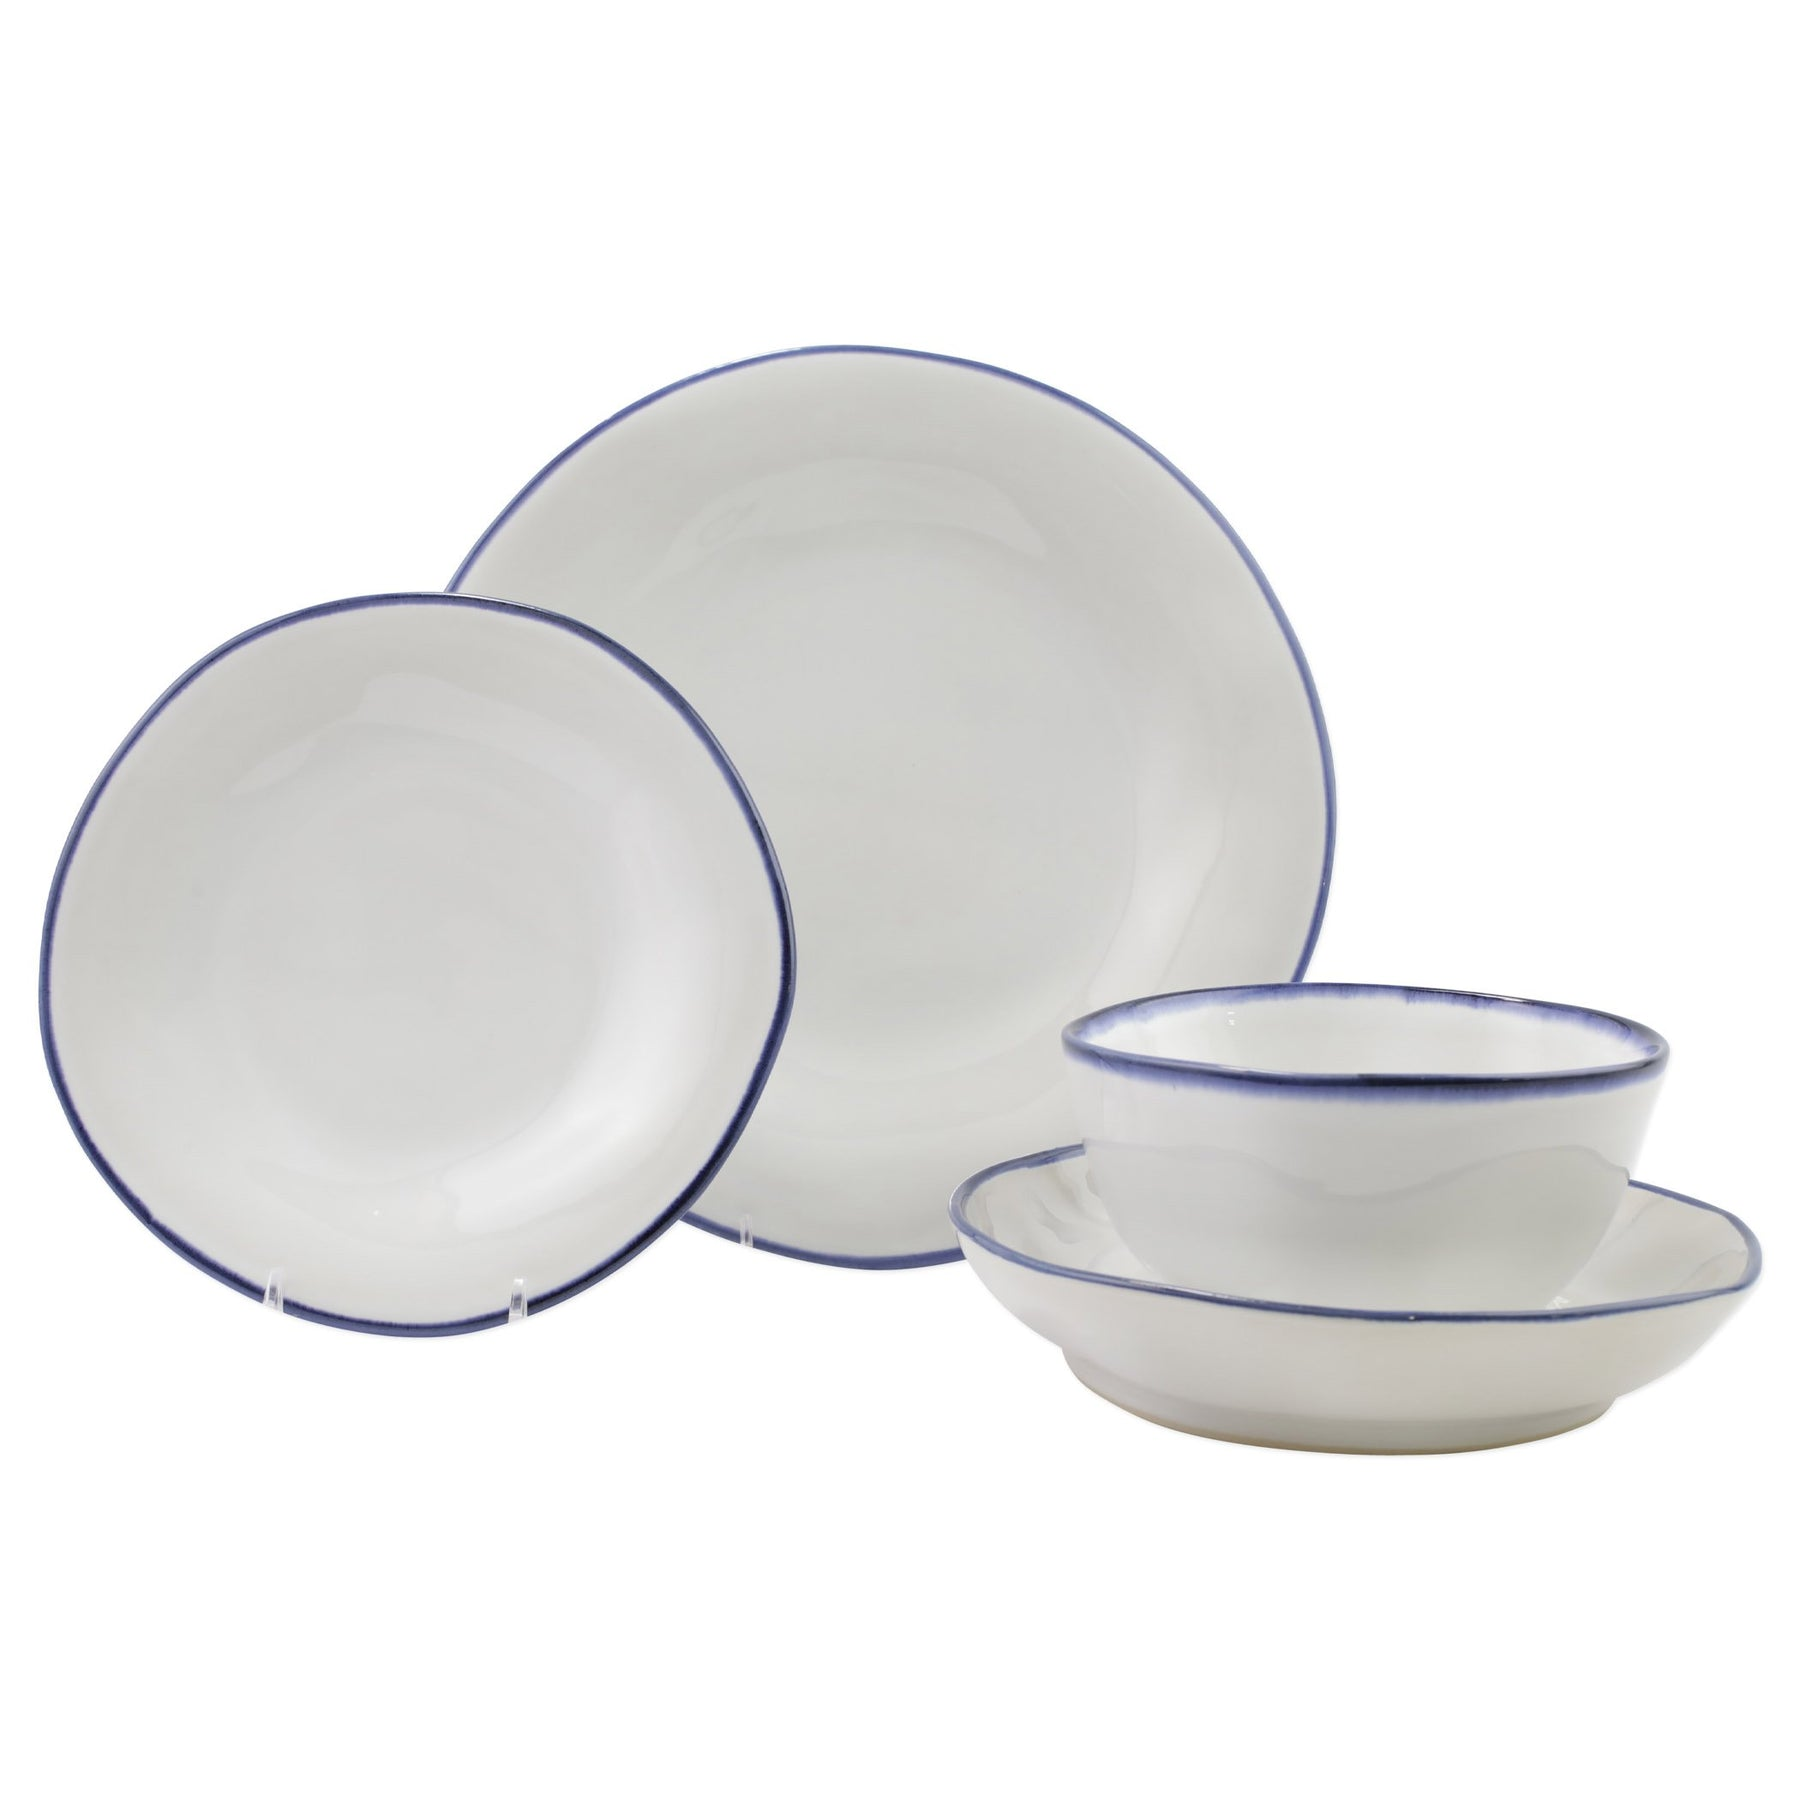 Aurora Edge Four Piece Place Setting Vietri